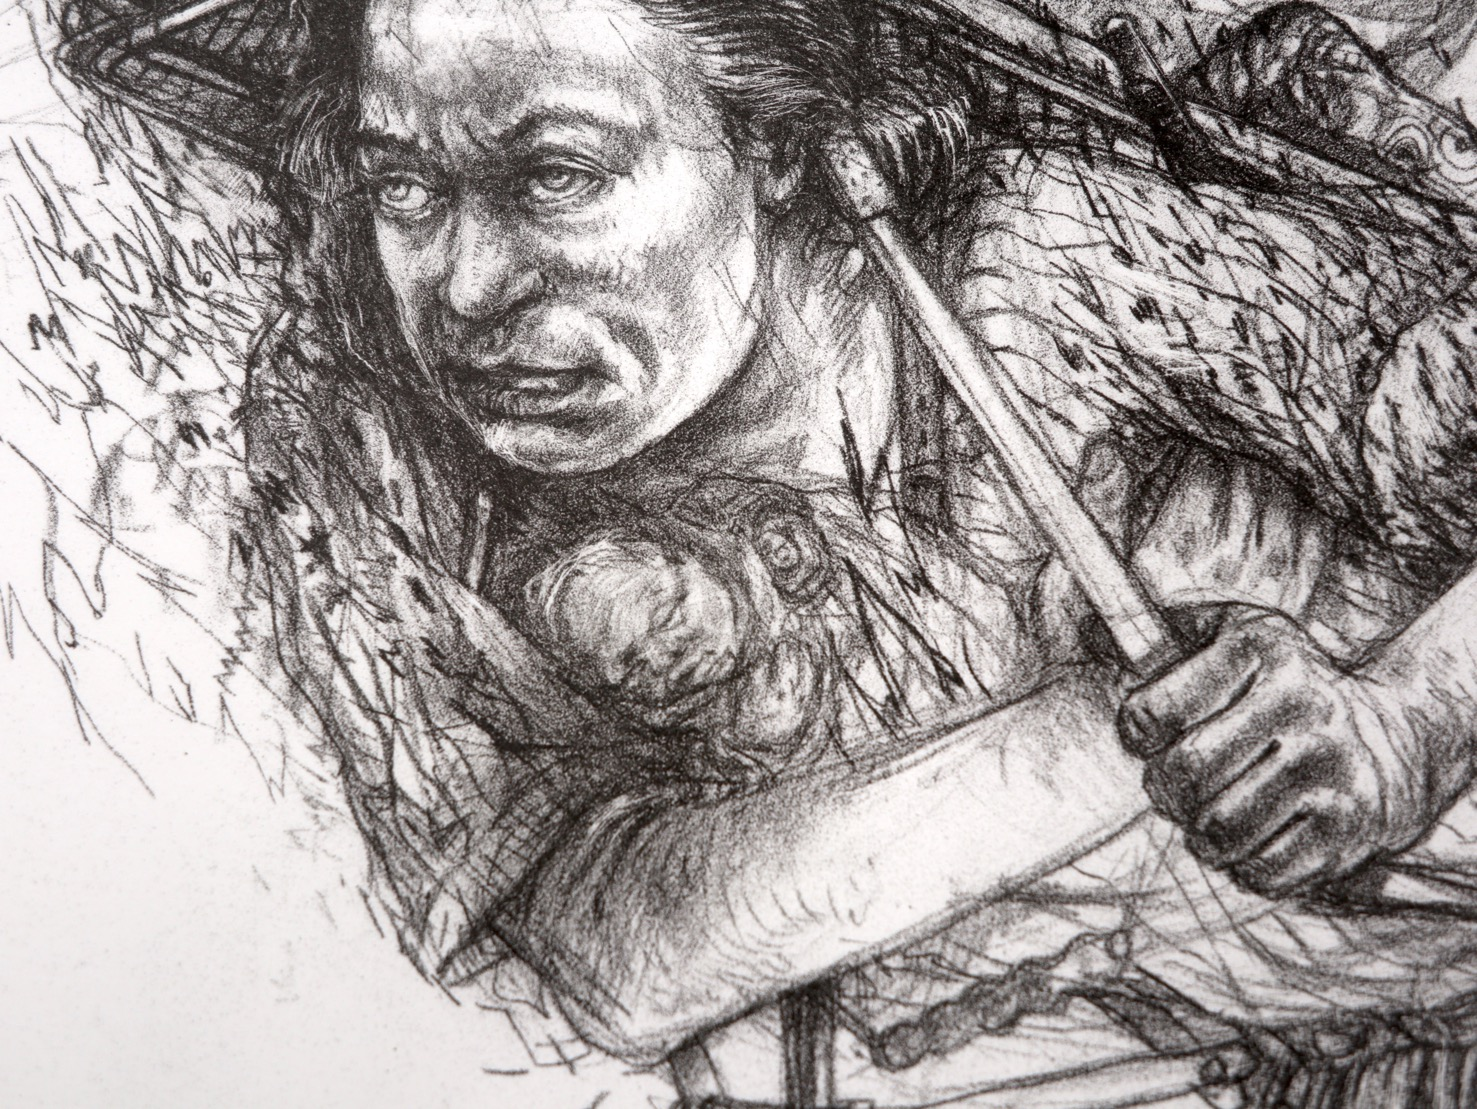 Detail of Surveying the Terrain print showing woman's face with a baby tucked against her chest